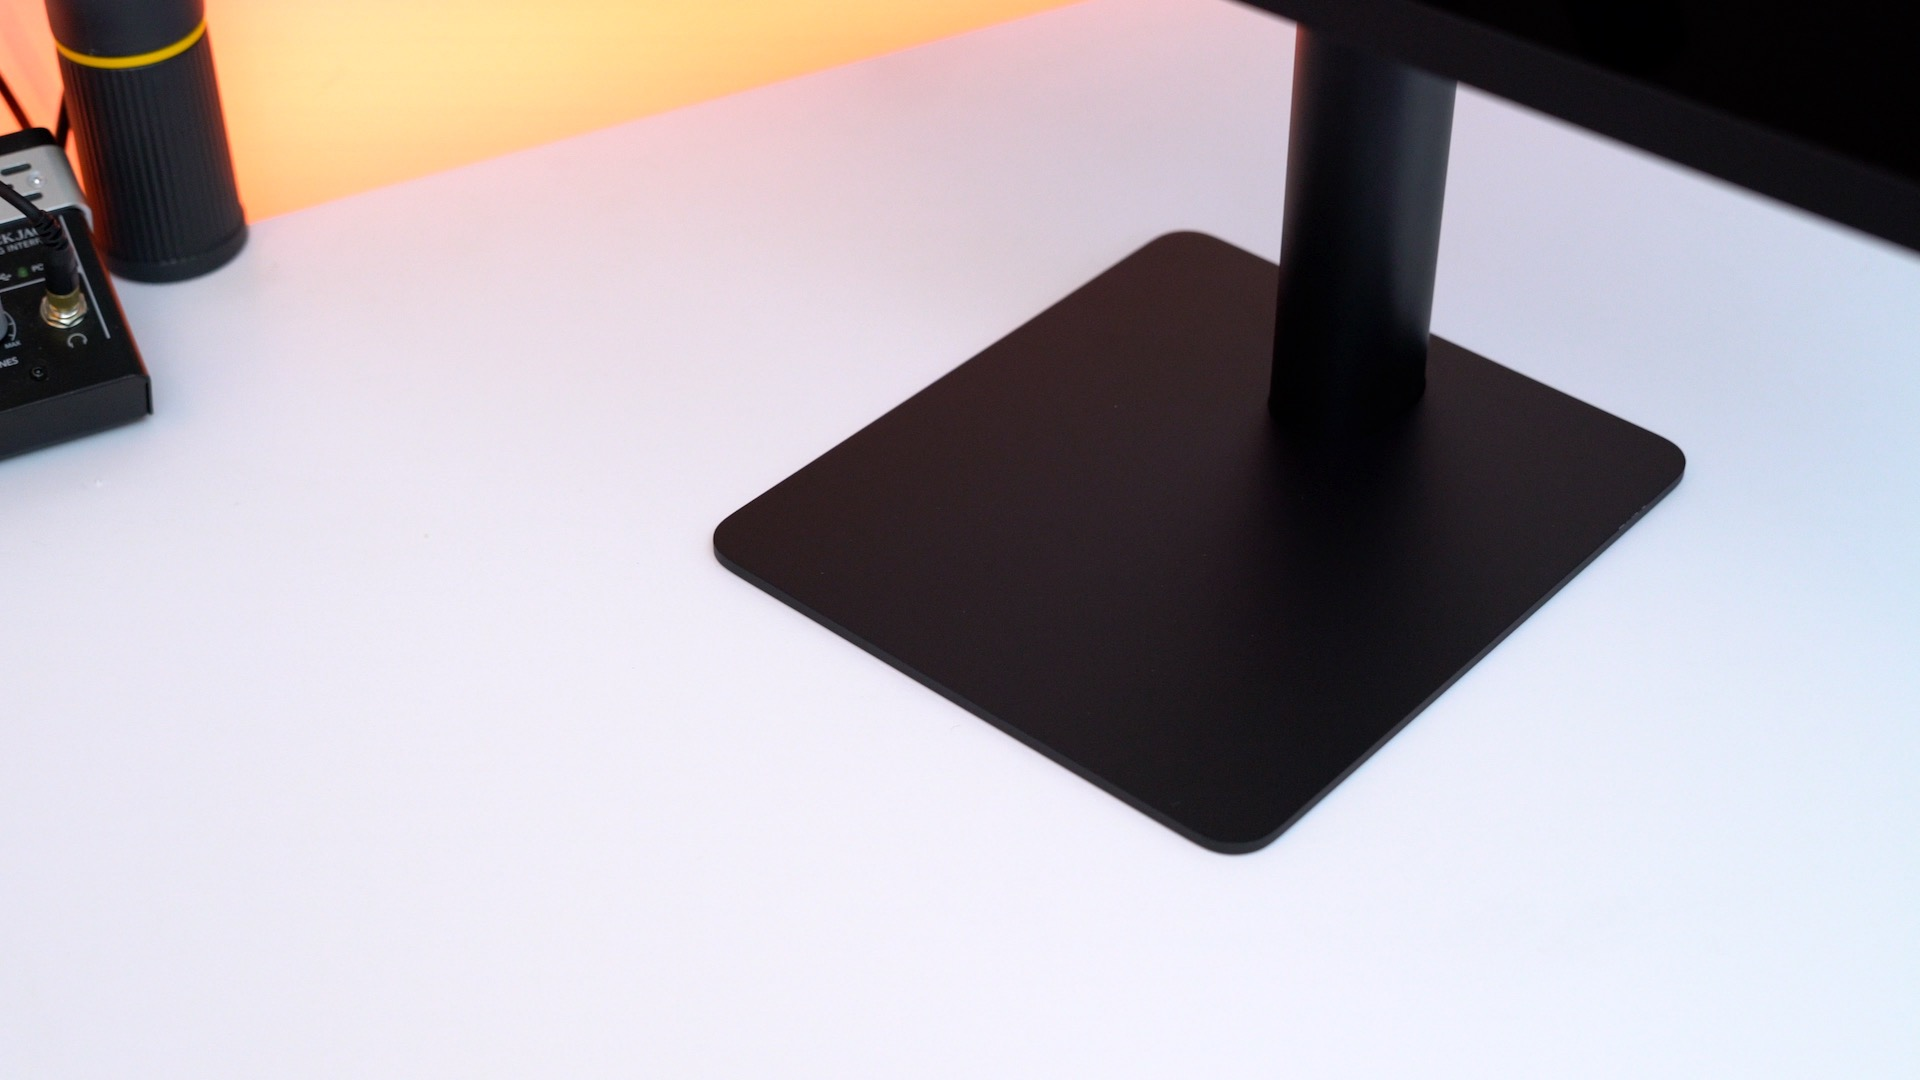 lg-ultrafine-5k-display-base-stand